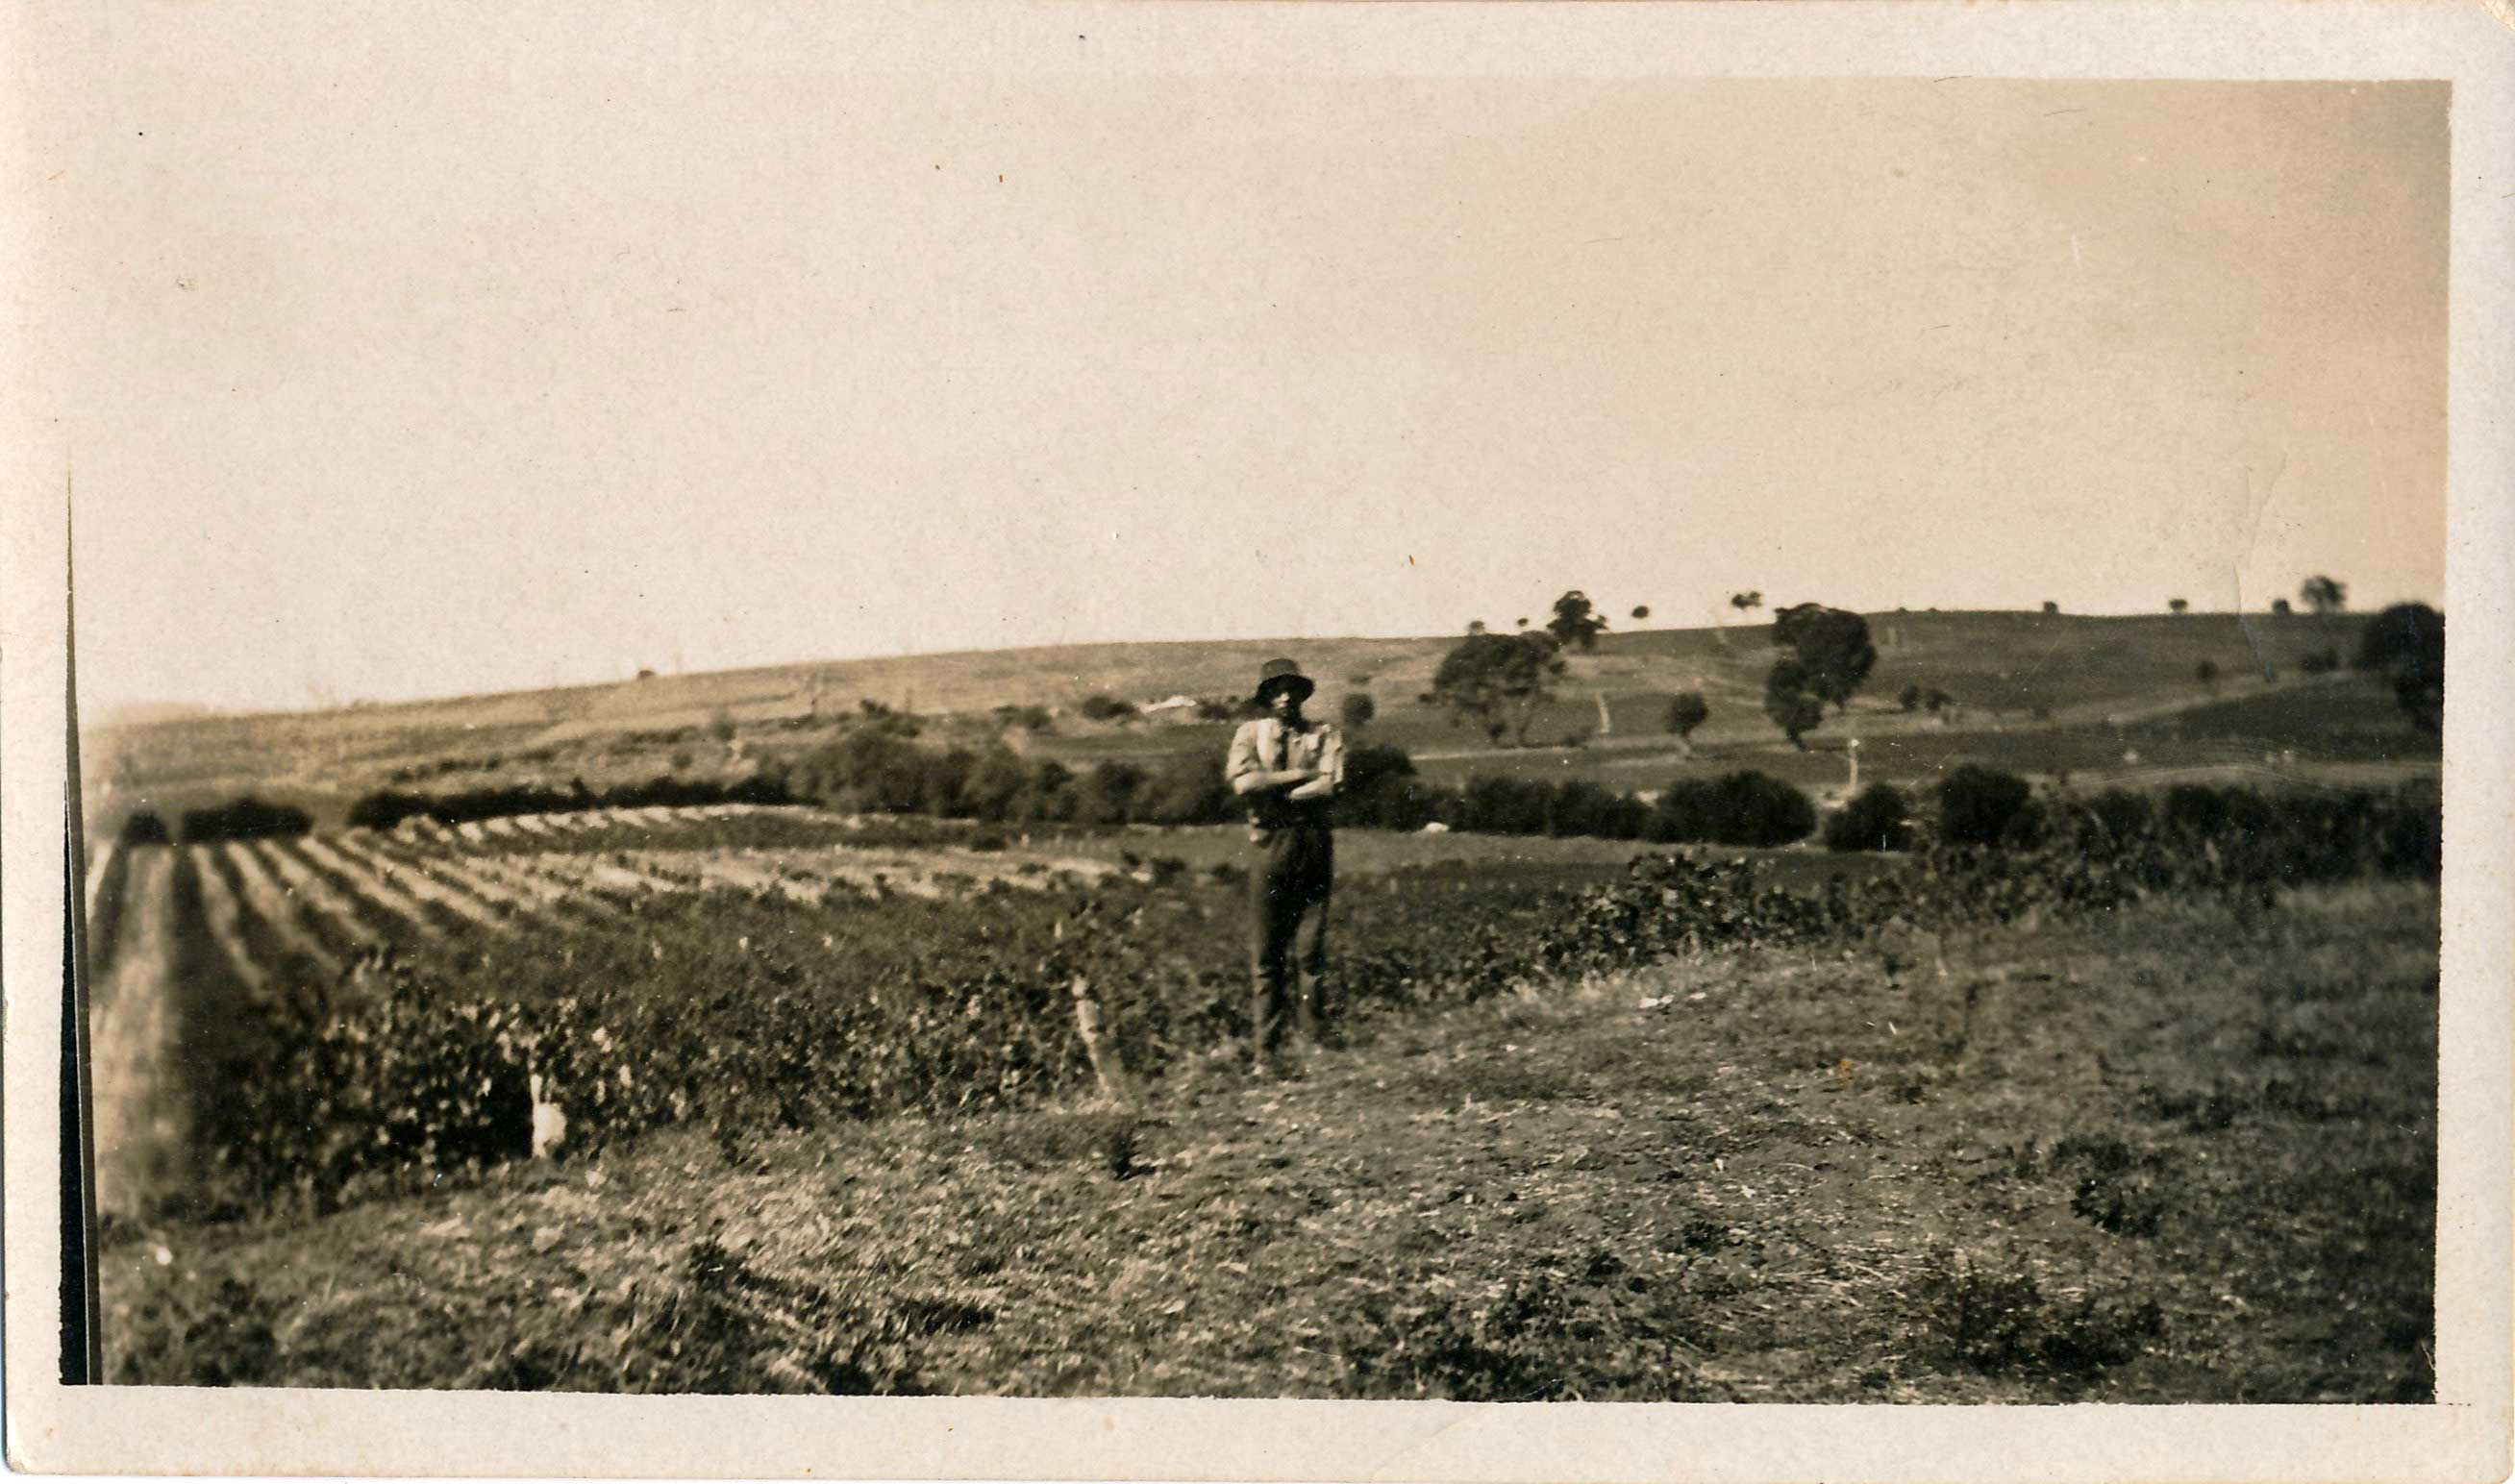 Worker in Stonegarden vineyards c1870s